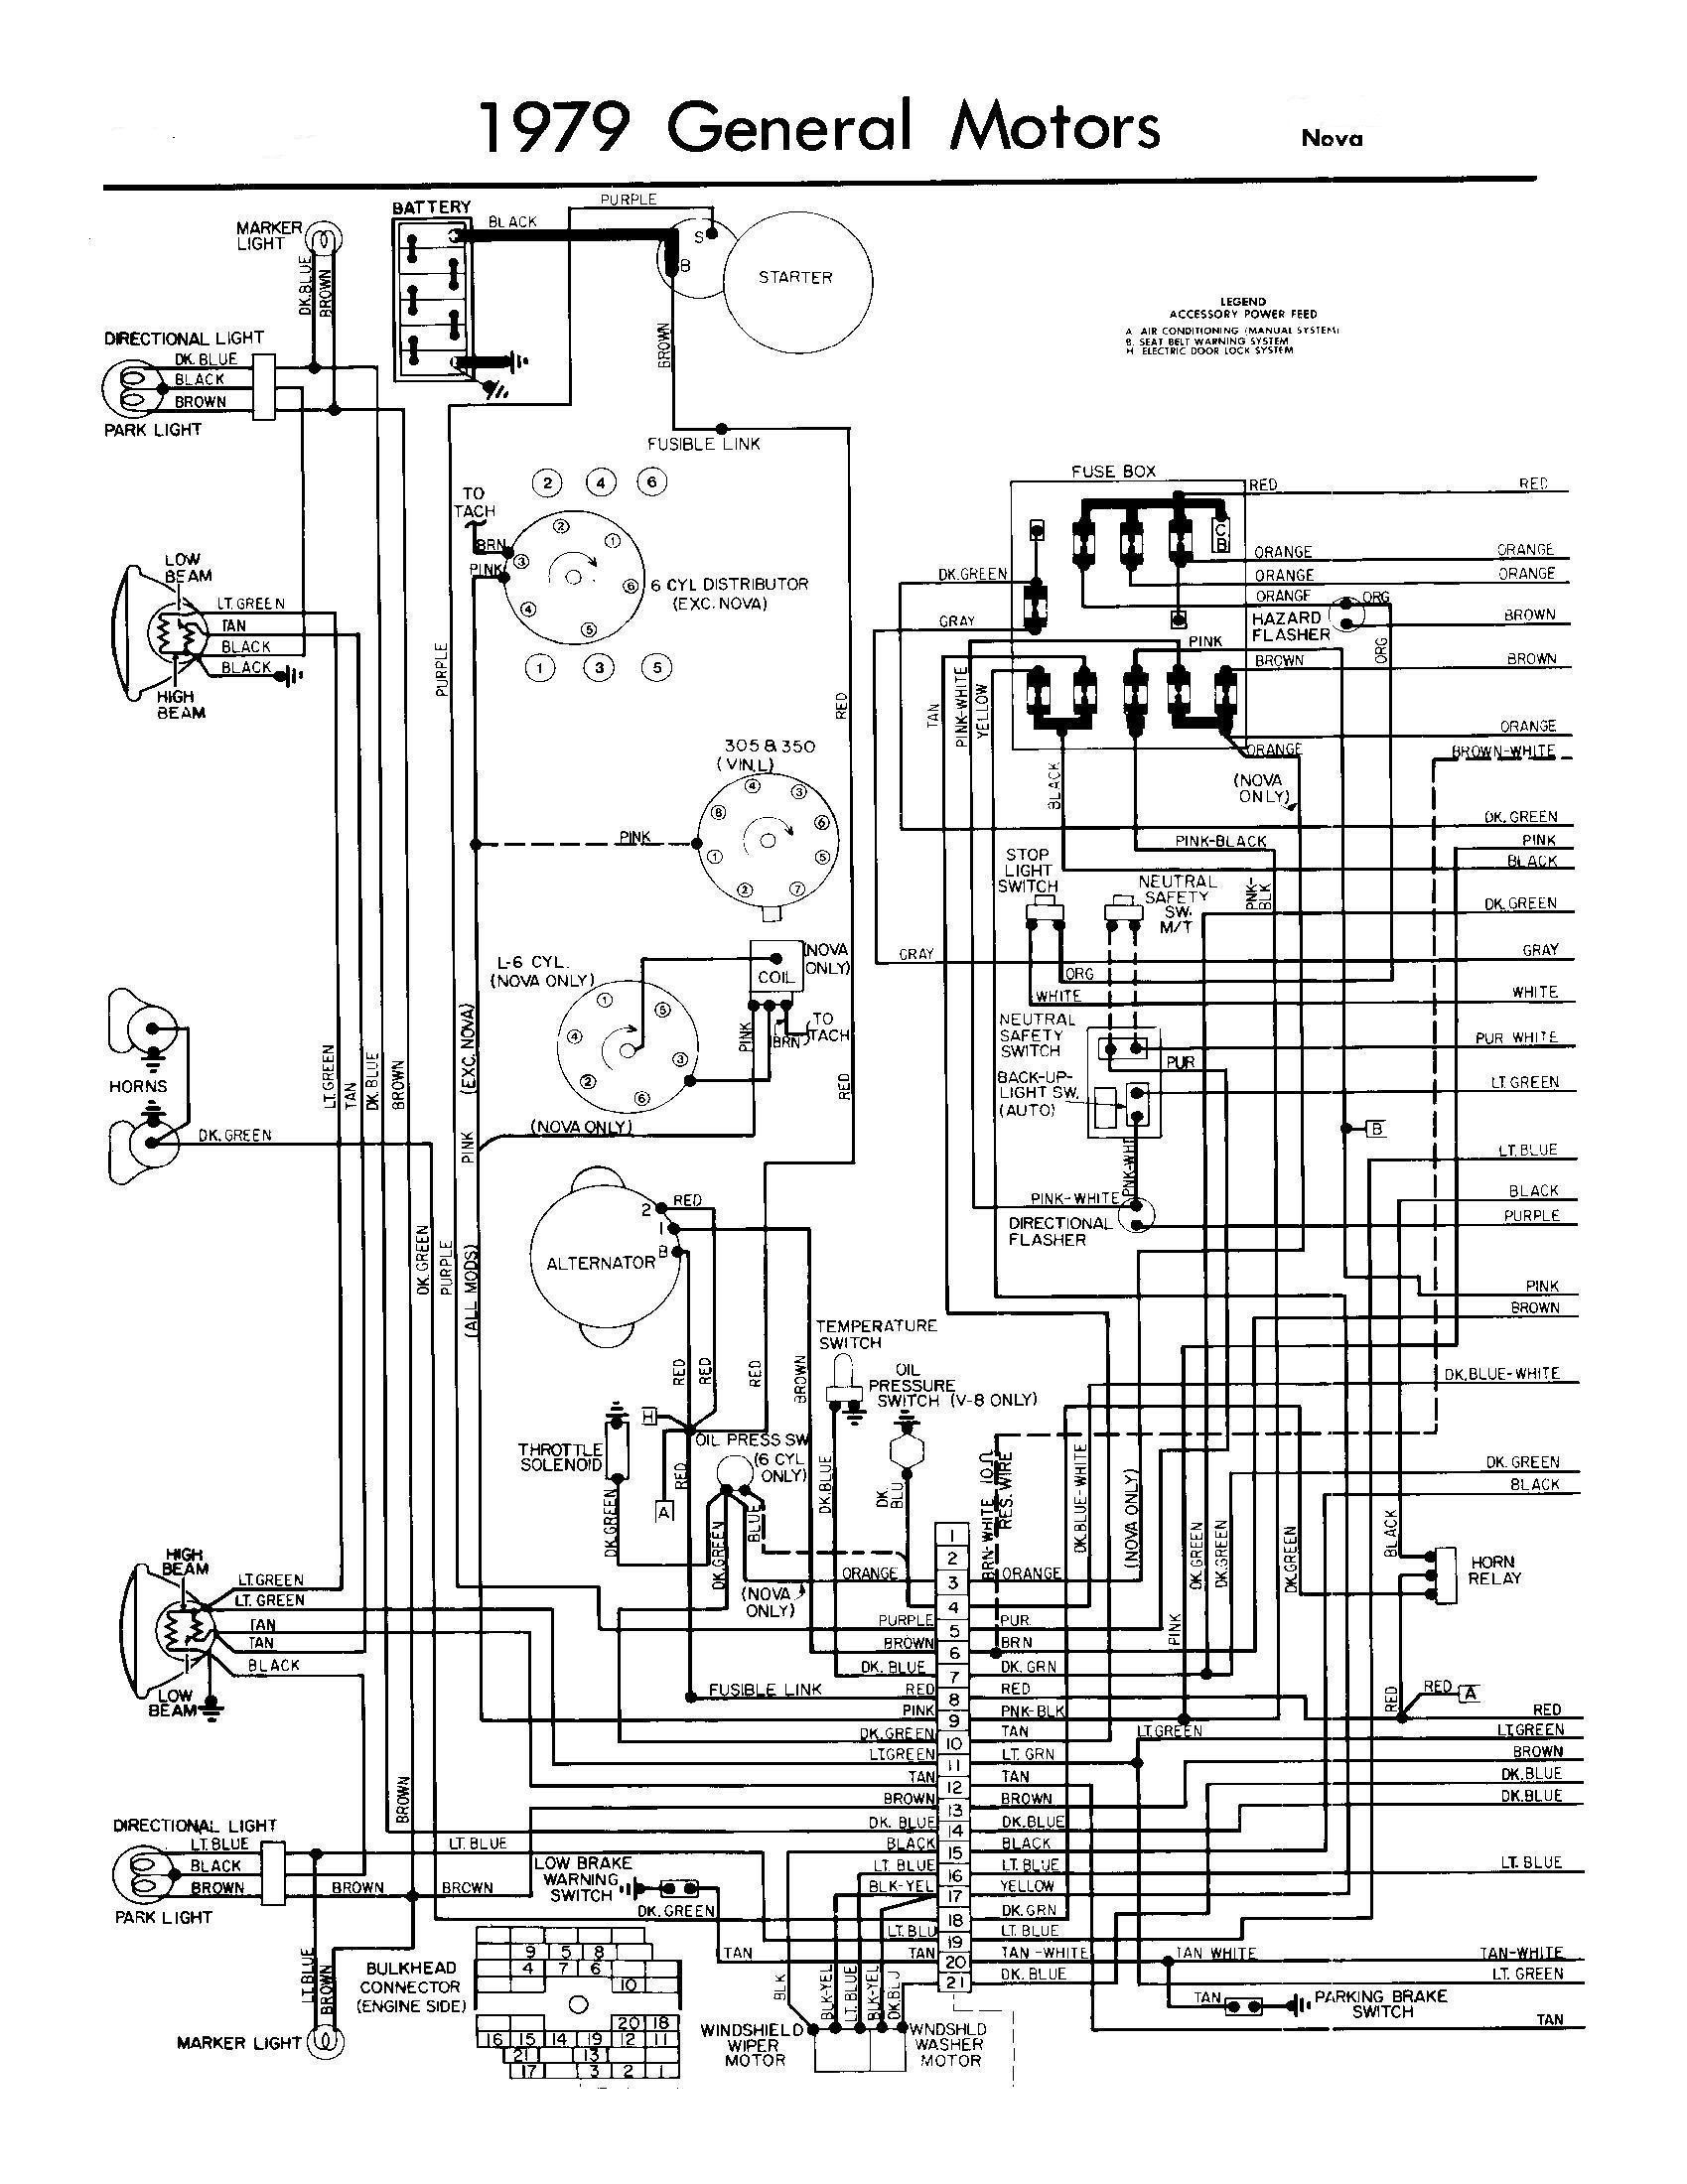 1975 gm hei distributor wiring diagram 3 11 tai do de \u2022pontiac distributor wiring online wiring diagram rh 1 japanizm co gm hei wiring schematic gm hei